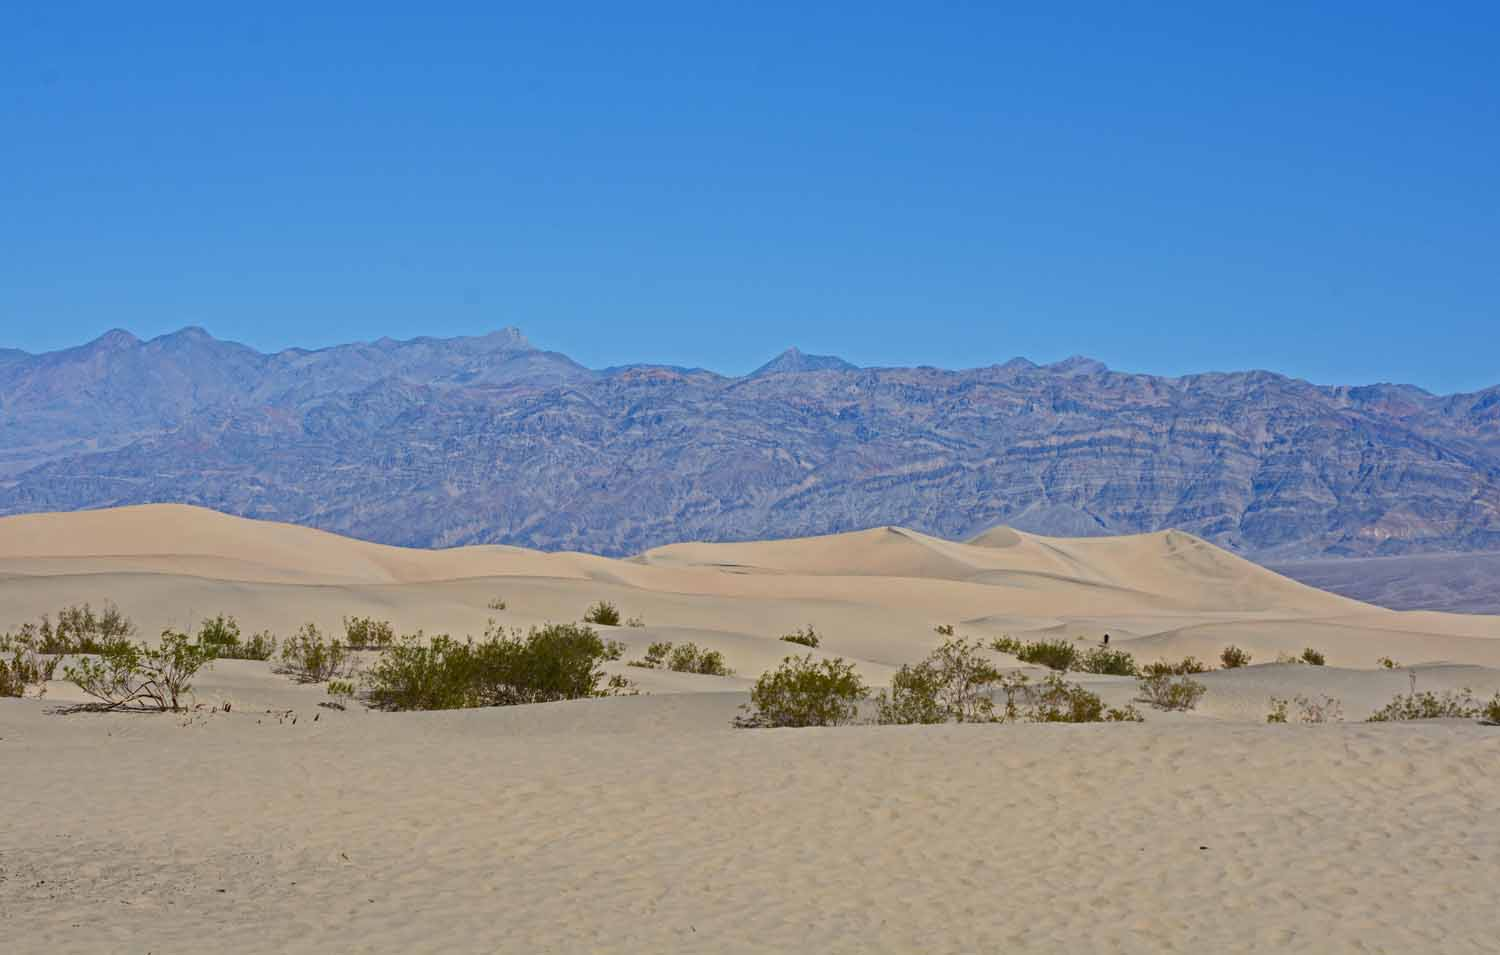 Not much real sand in the desert.  There are some dunes in this one localize area.